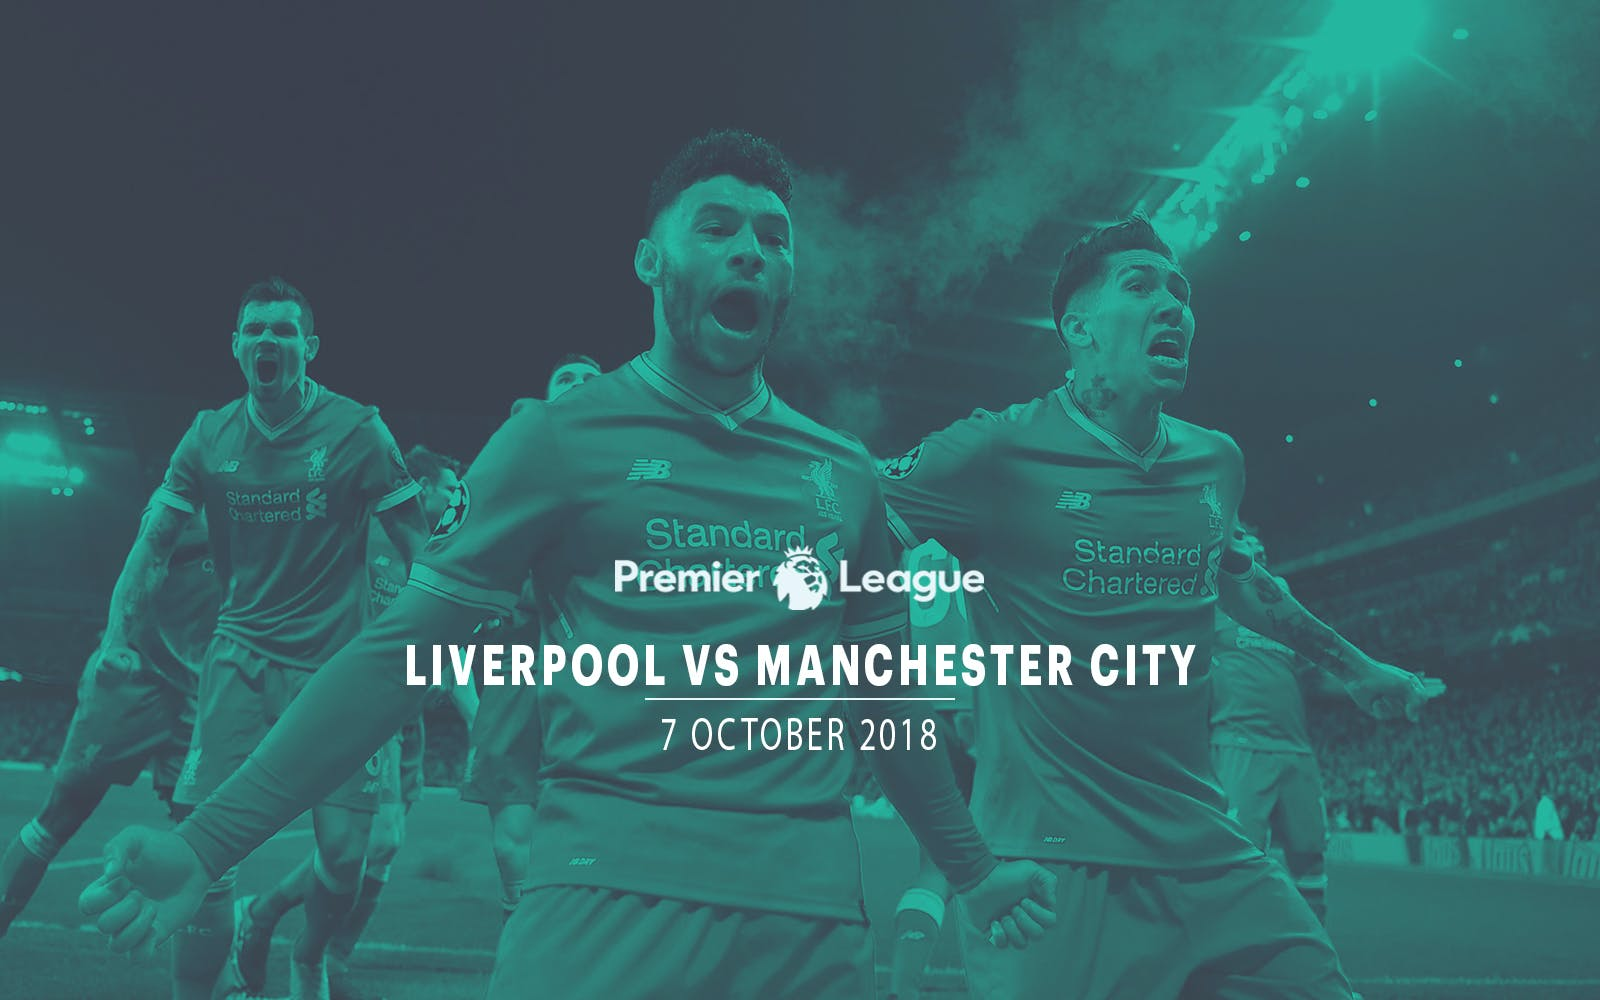 liverpool vs manchester city - 7th oct'18-1